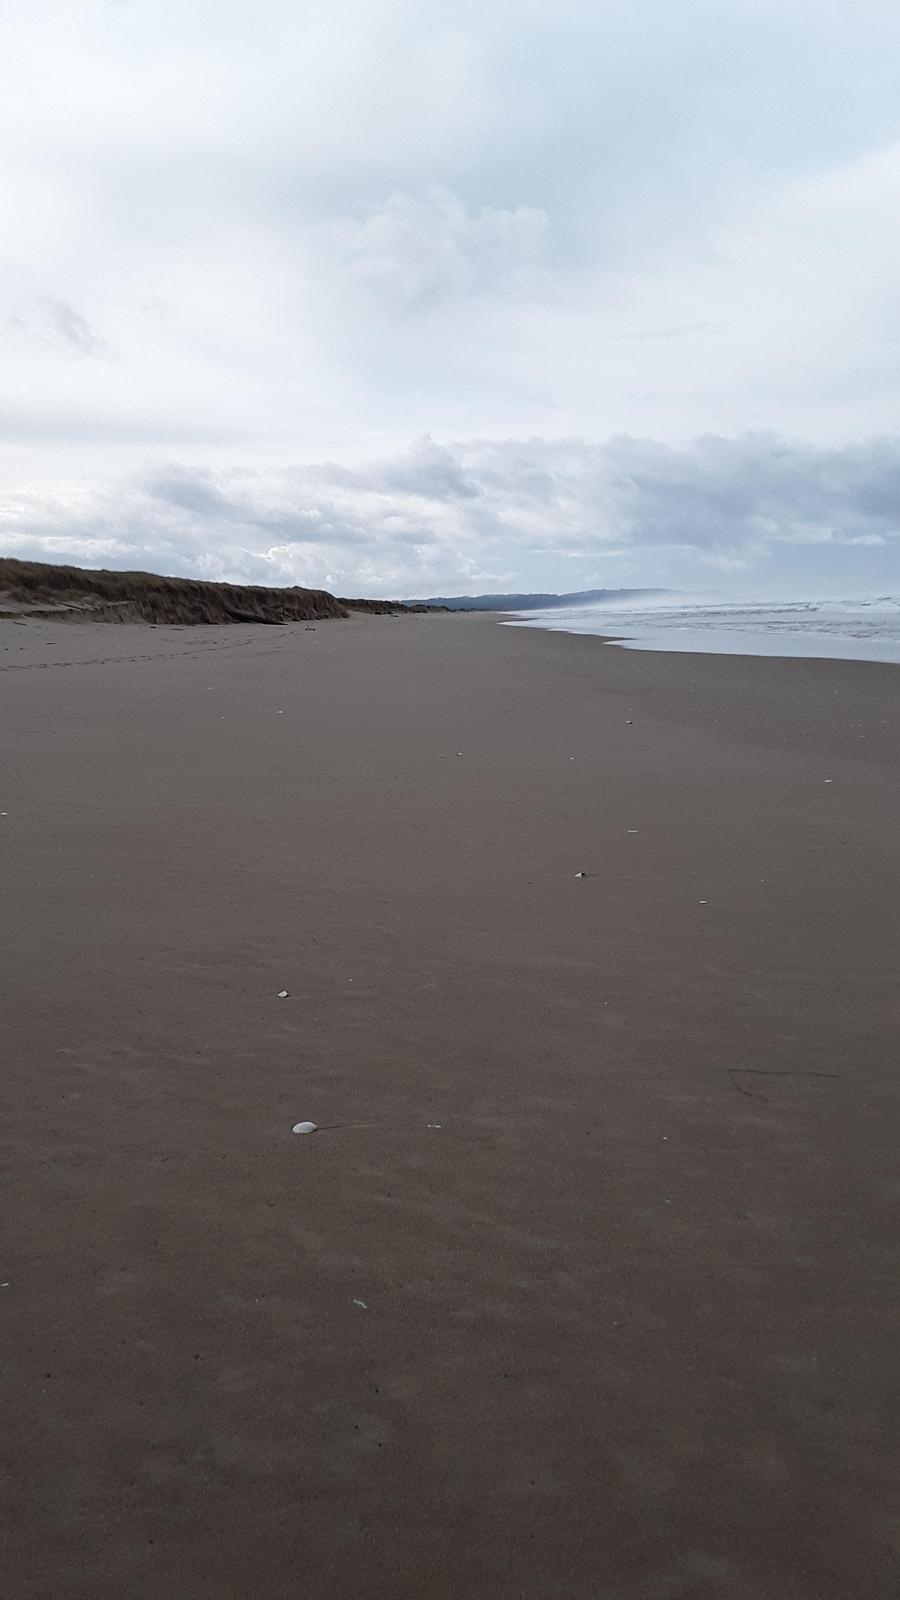 Beach view to the south.